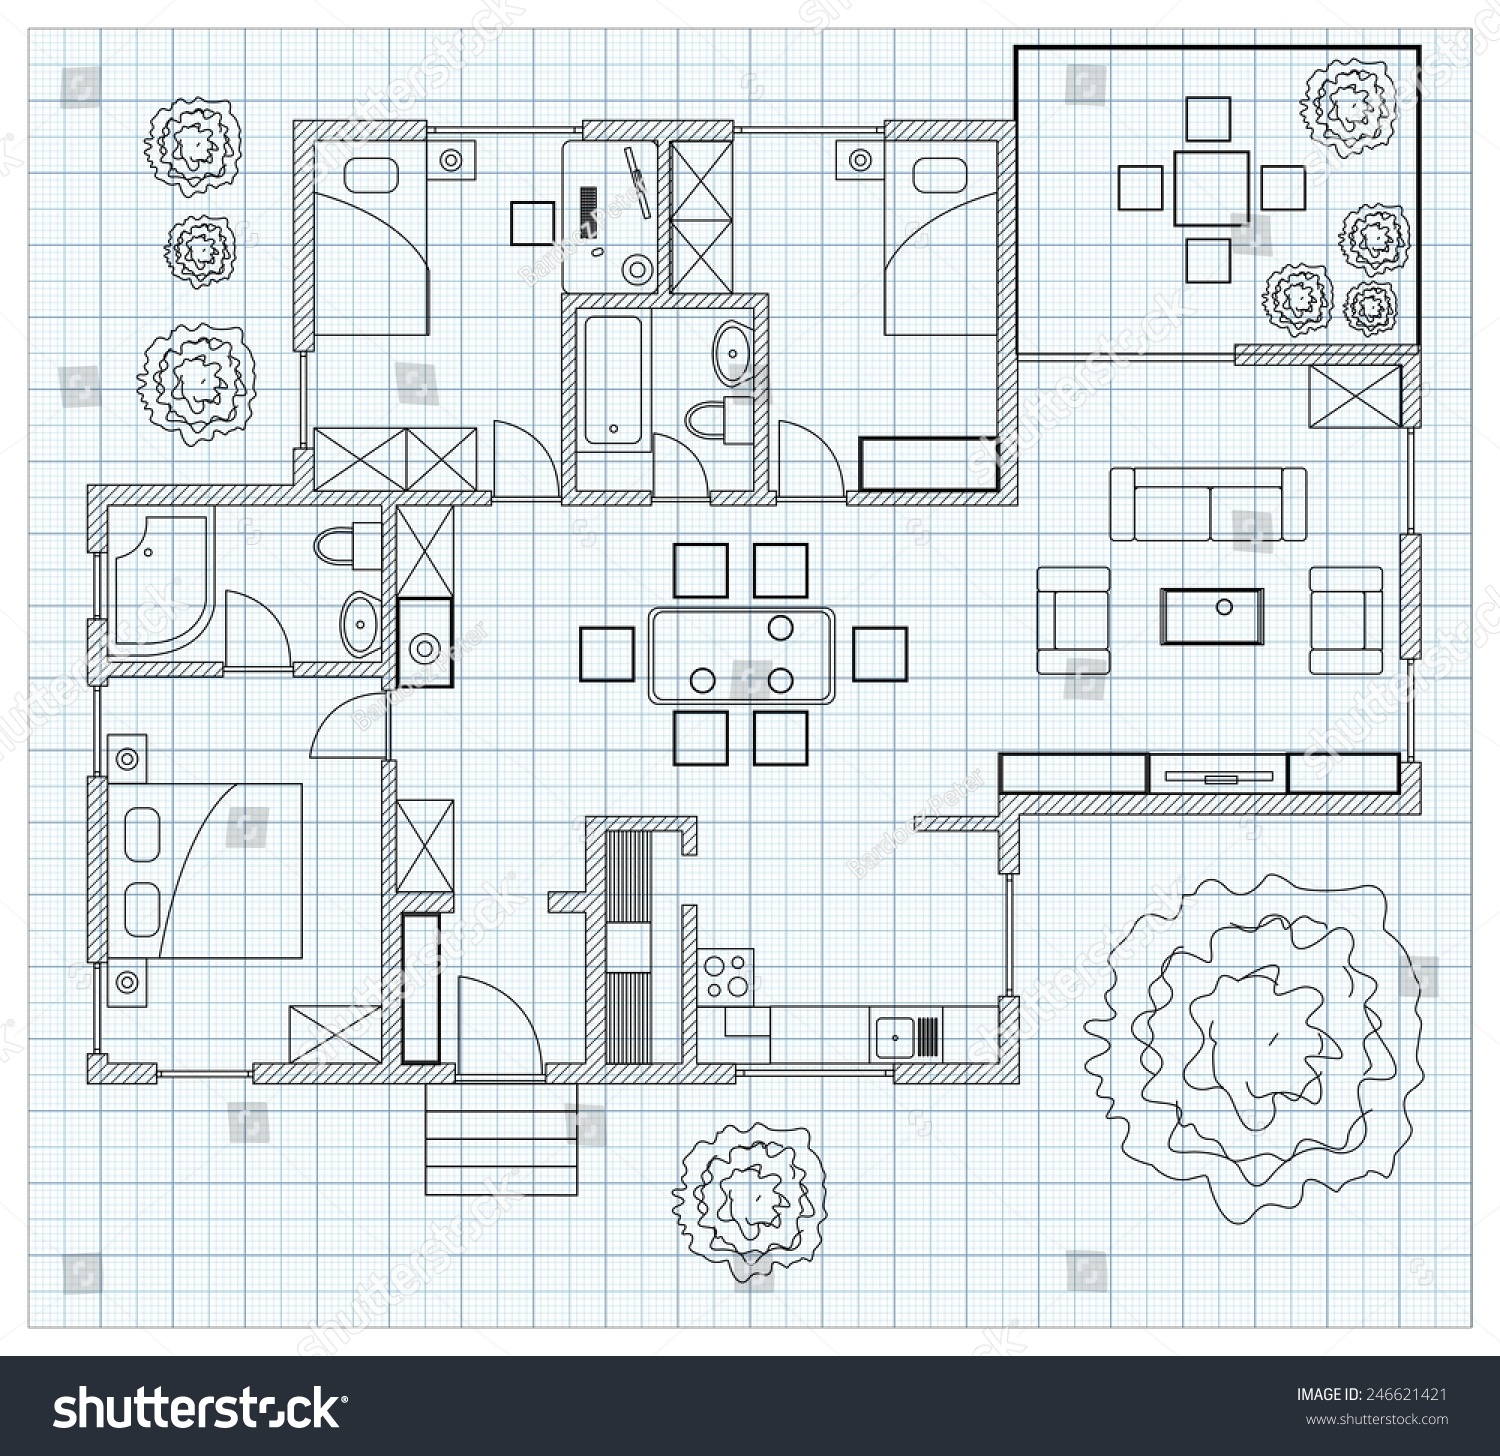 Black white floor plan sketch house stock vector 246621421 for Floor plan sketch